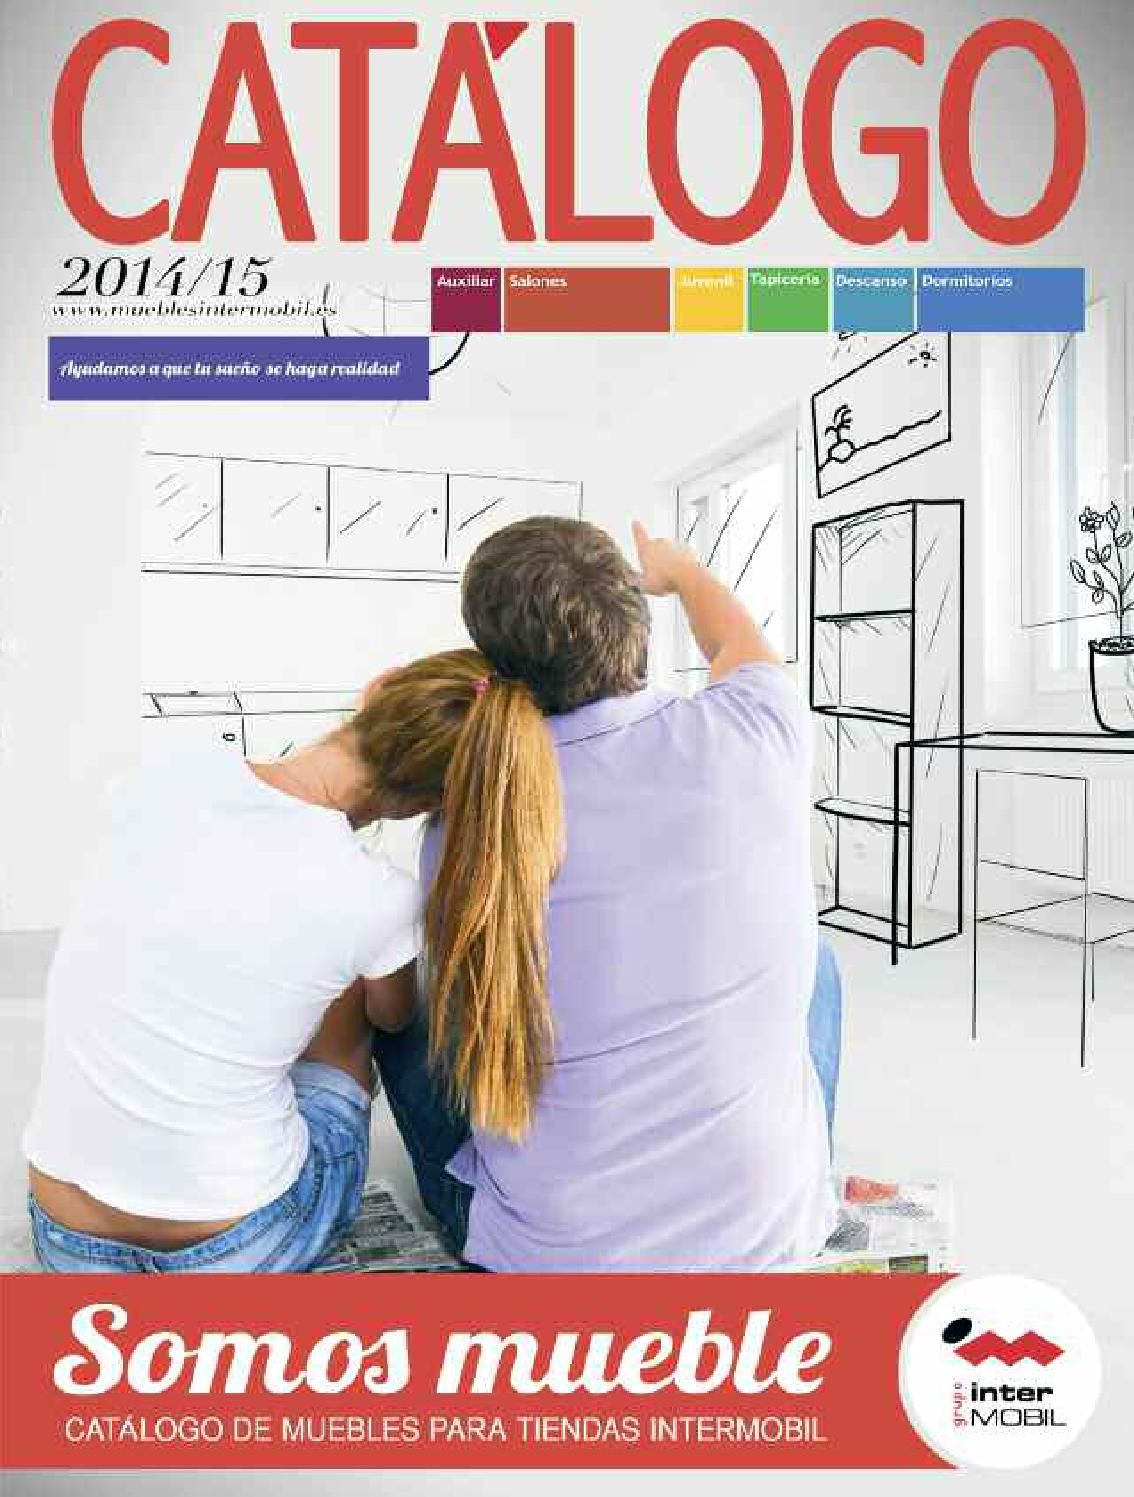 Catalogo muebles intermobil by issuu - Muebles yecla catalogo ...